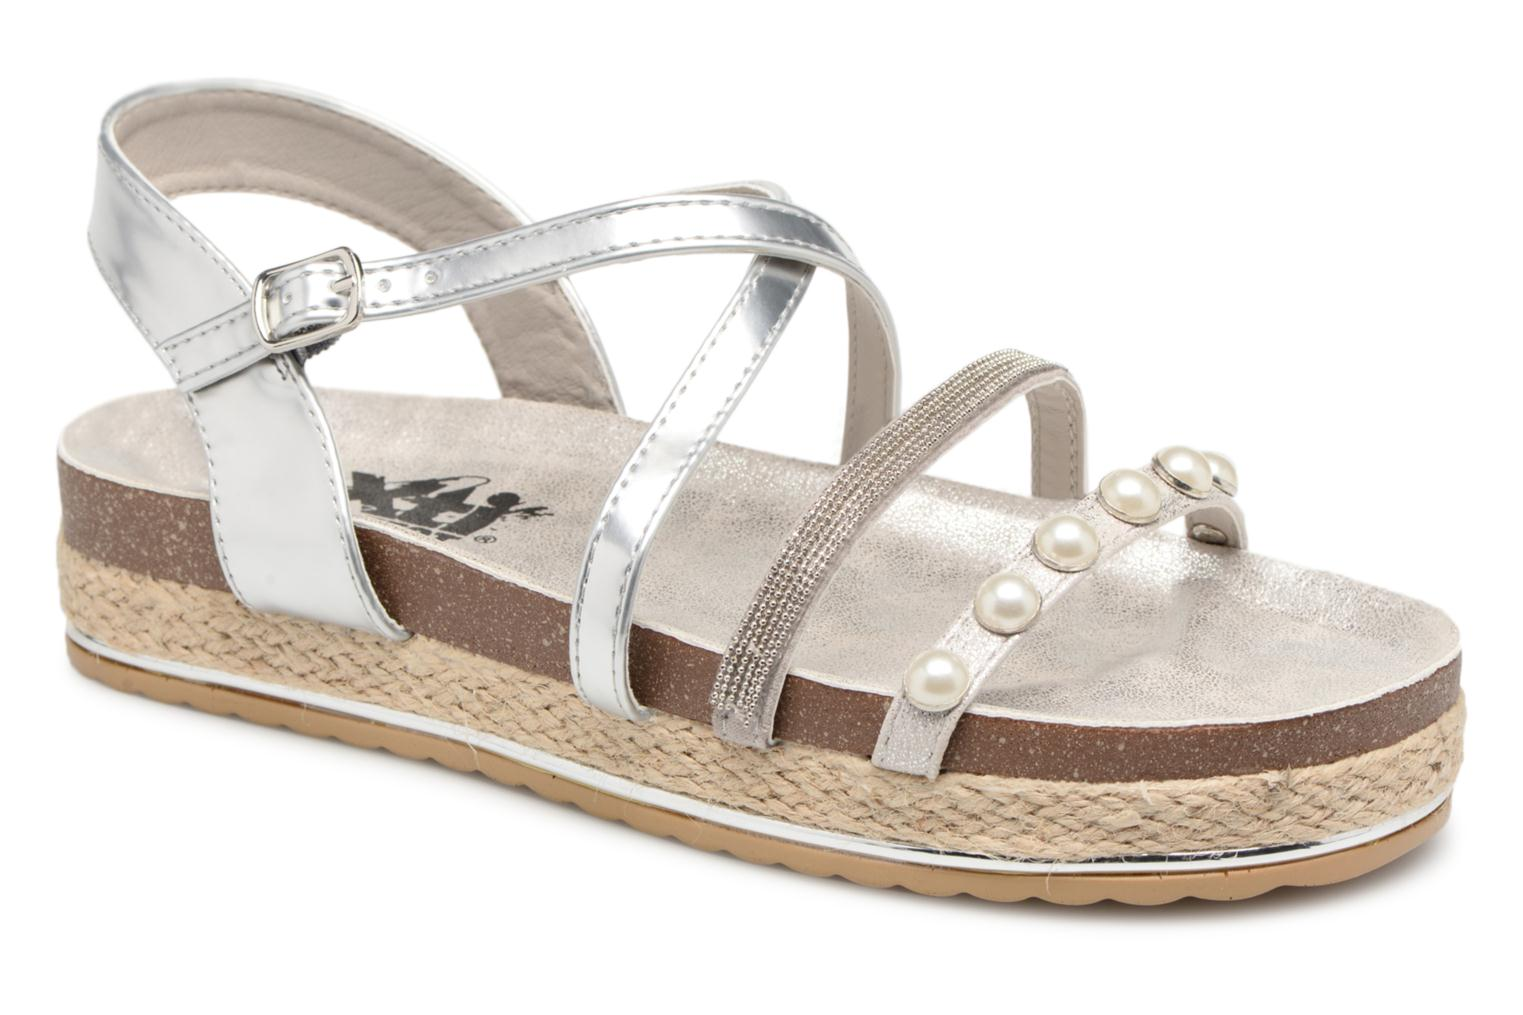 Marques Chaussure femme Xti femme 47835 Silver